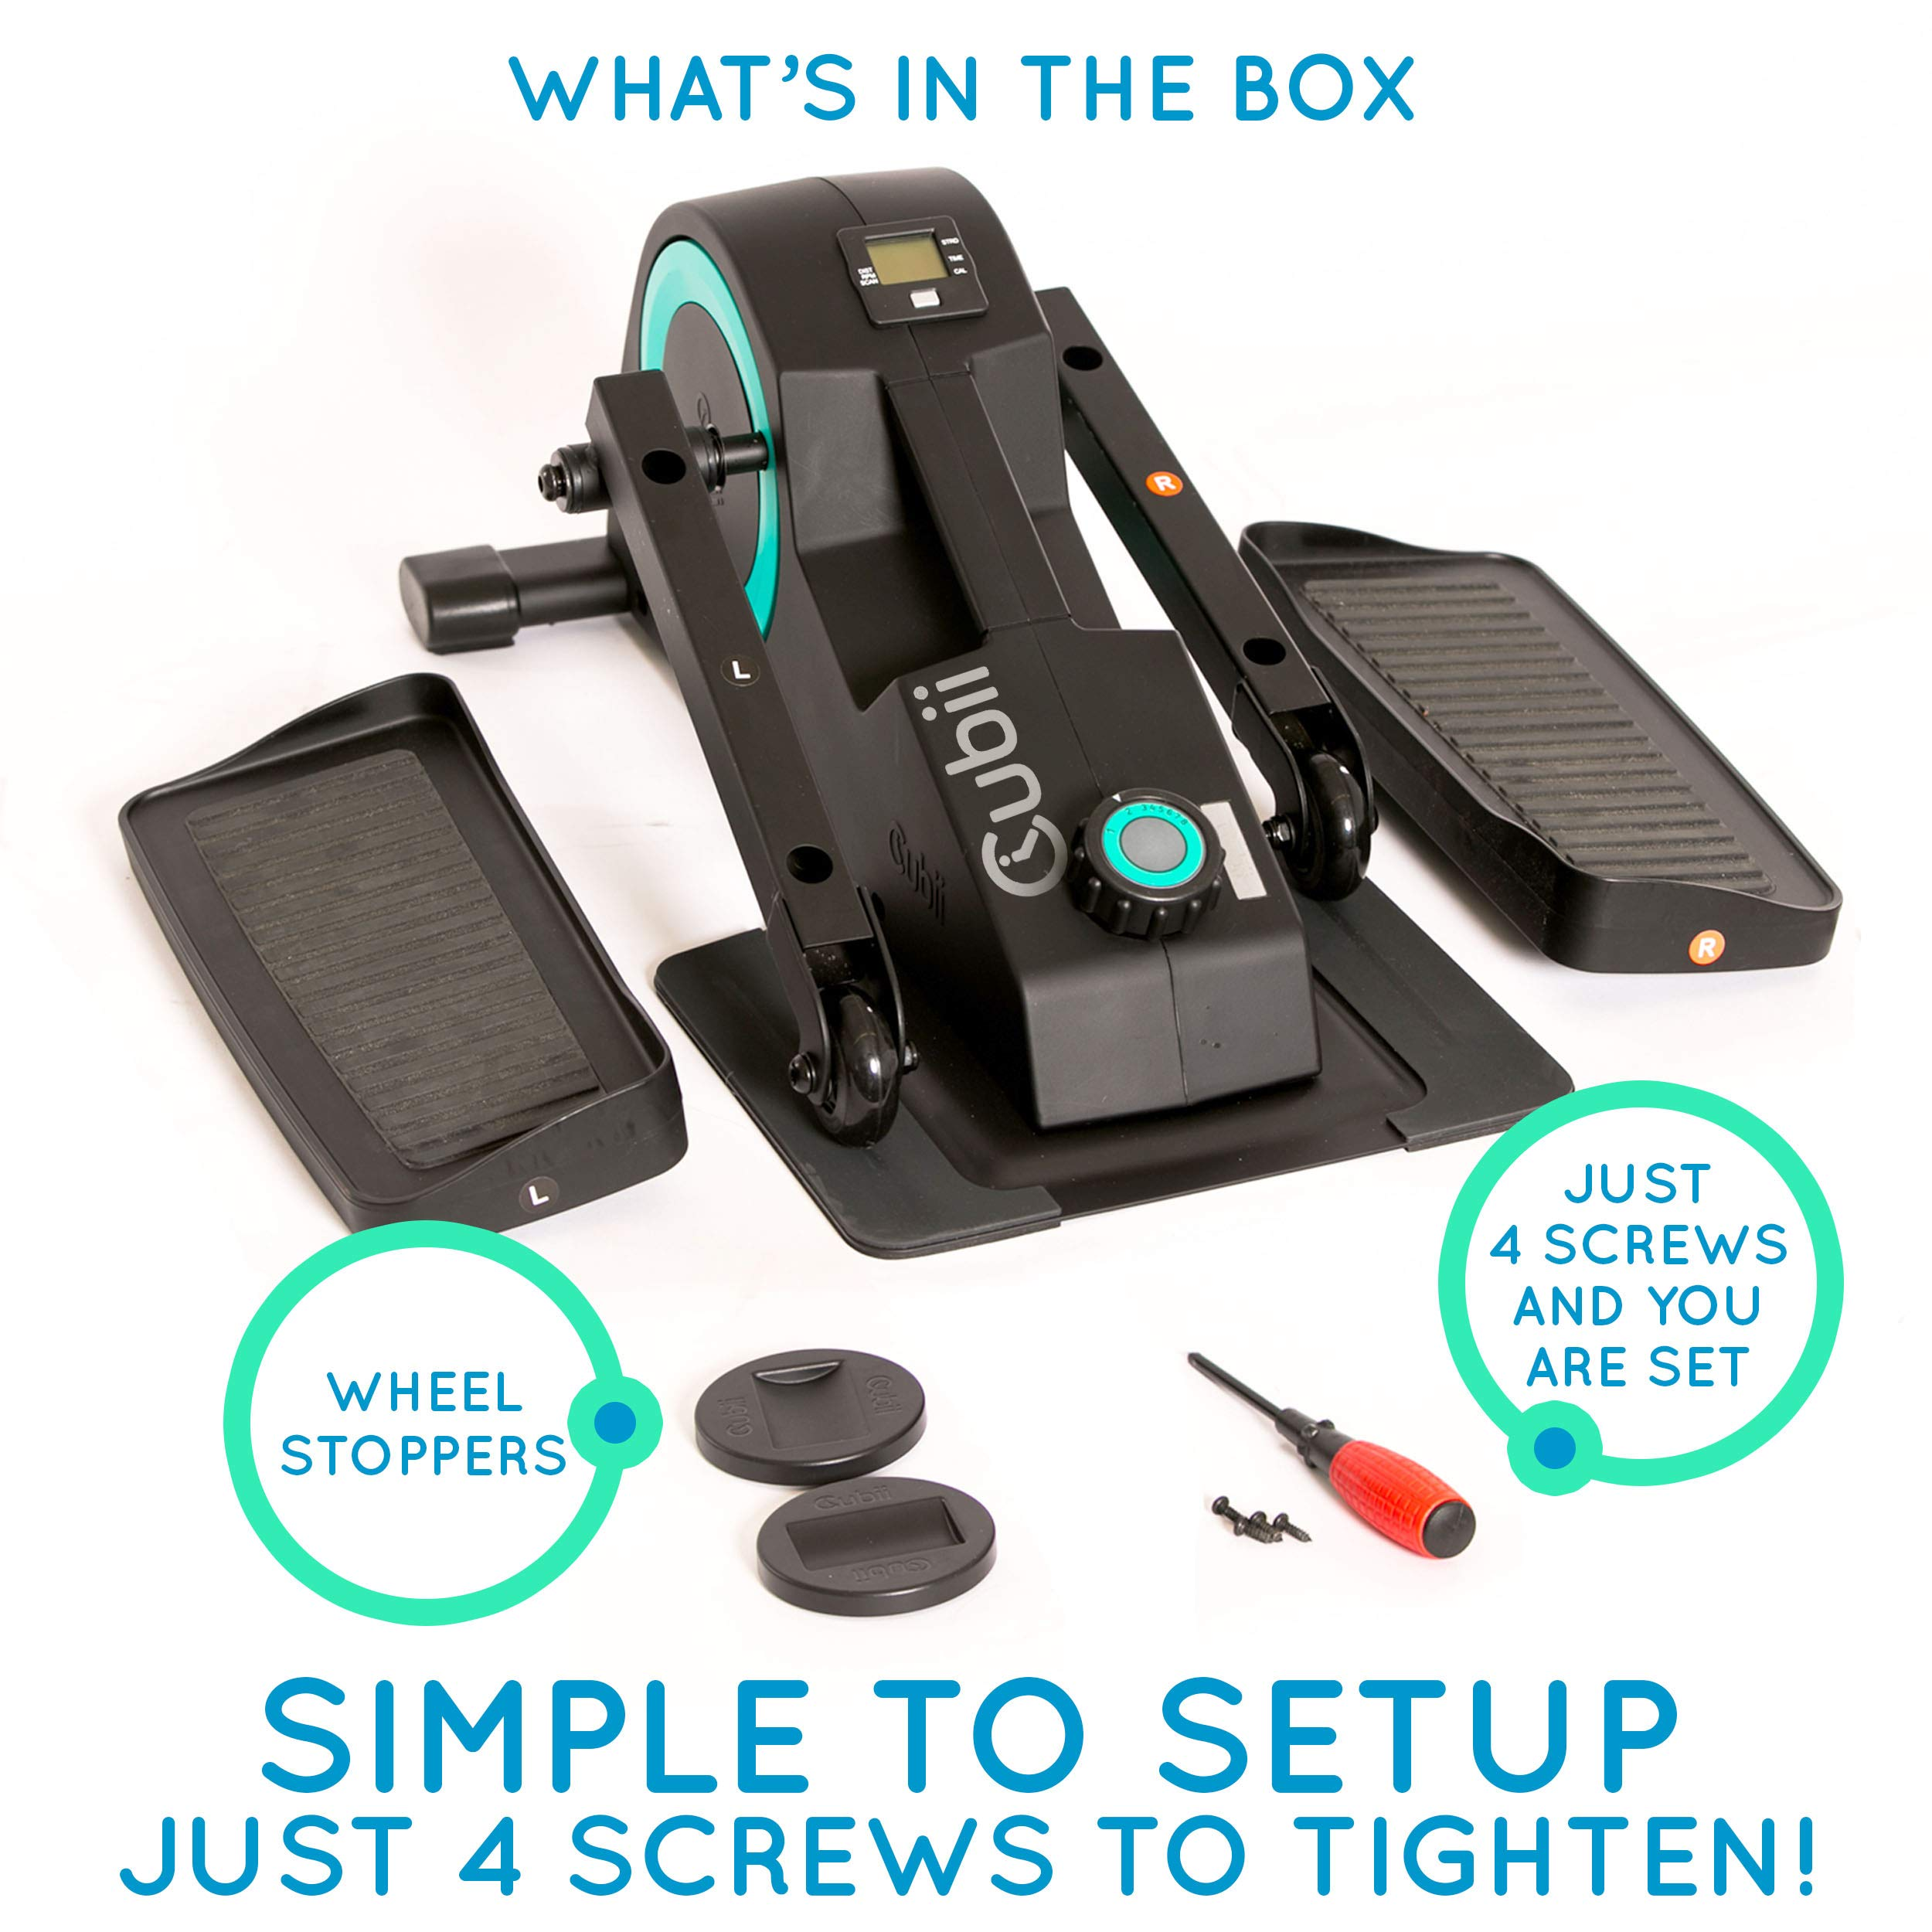 Cubii Jr: Desk Elliptical with Built in Display Monitor, Easy Assembly, Quiet & Compact, Adjustable Resistance (Turquoise) by Cubii (Image #9)